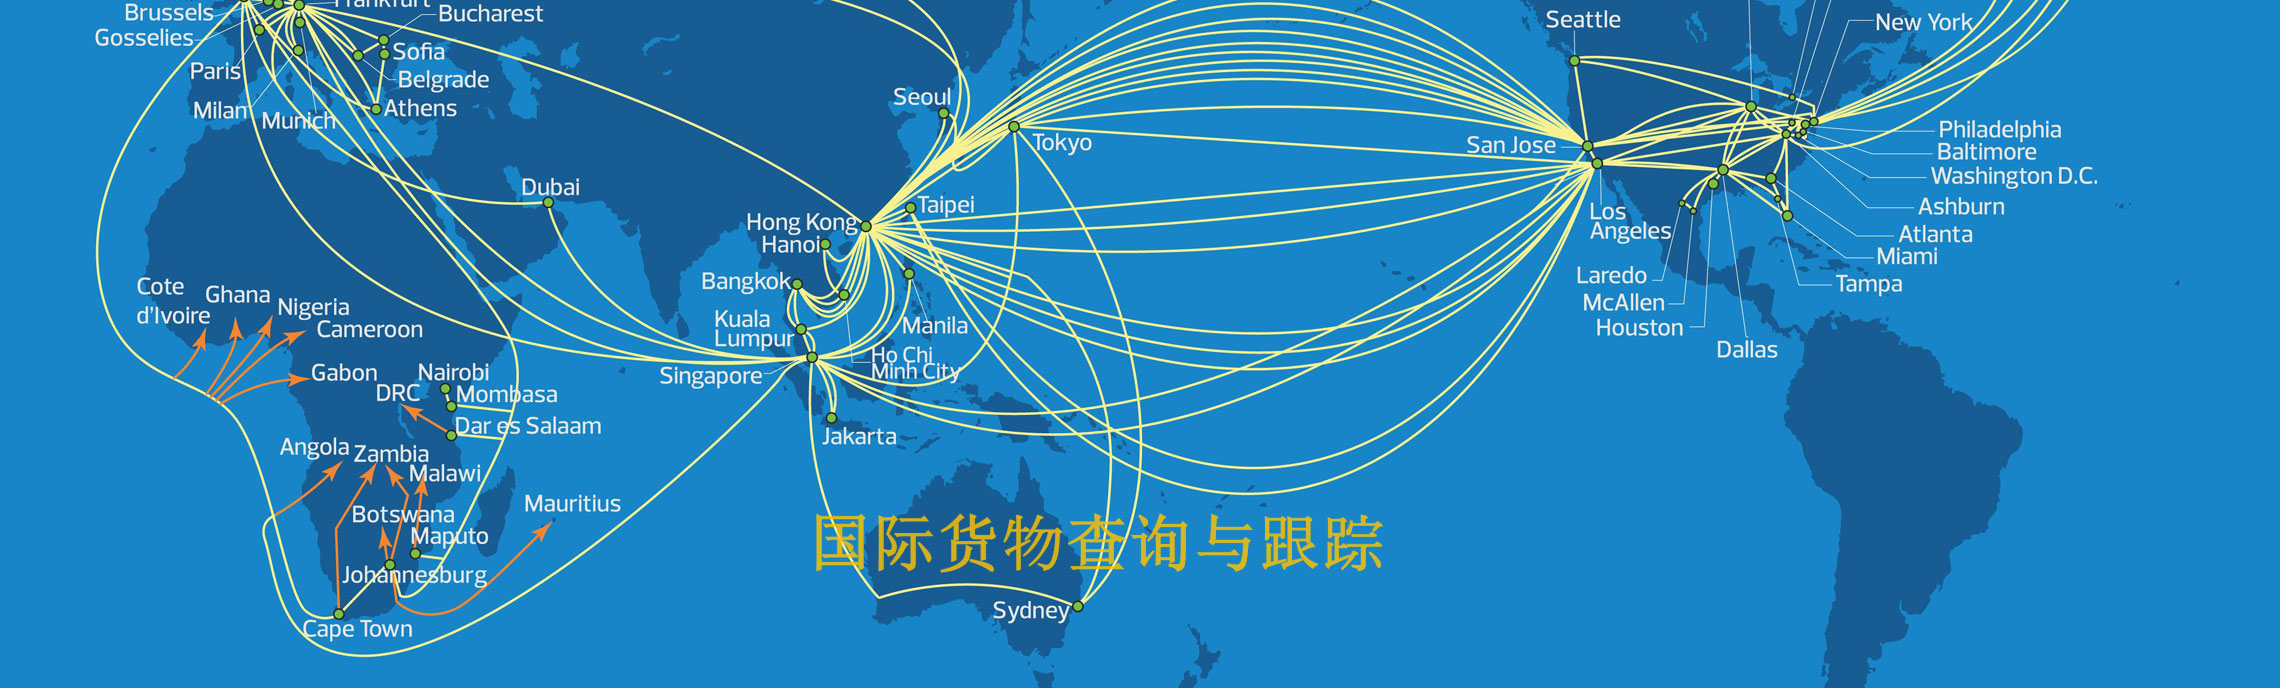 International shipment Trace and Tracking - Container Air